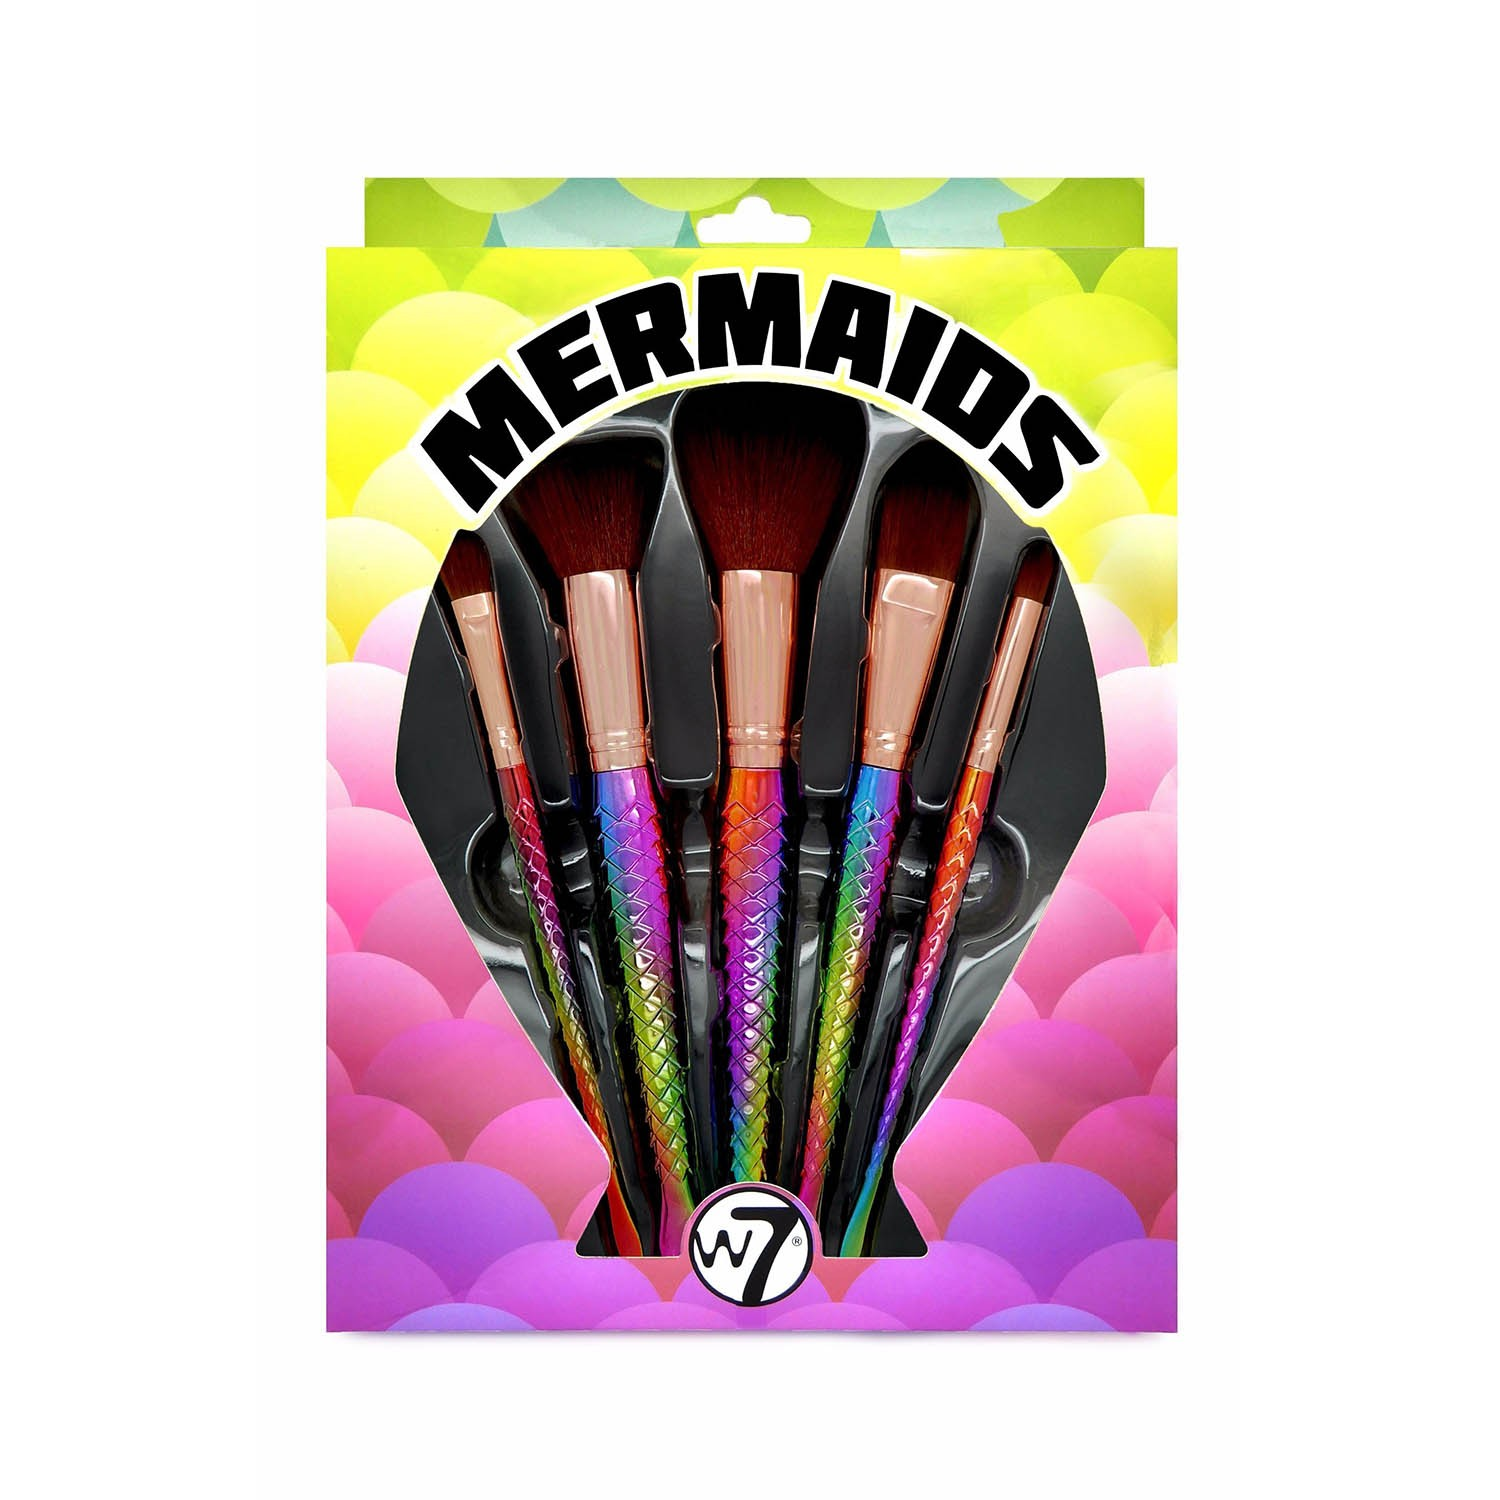 5-Teiliges Pinsel-Set - Mermaid Brush Collection